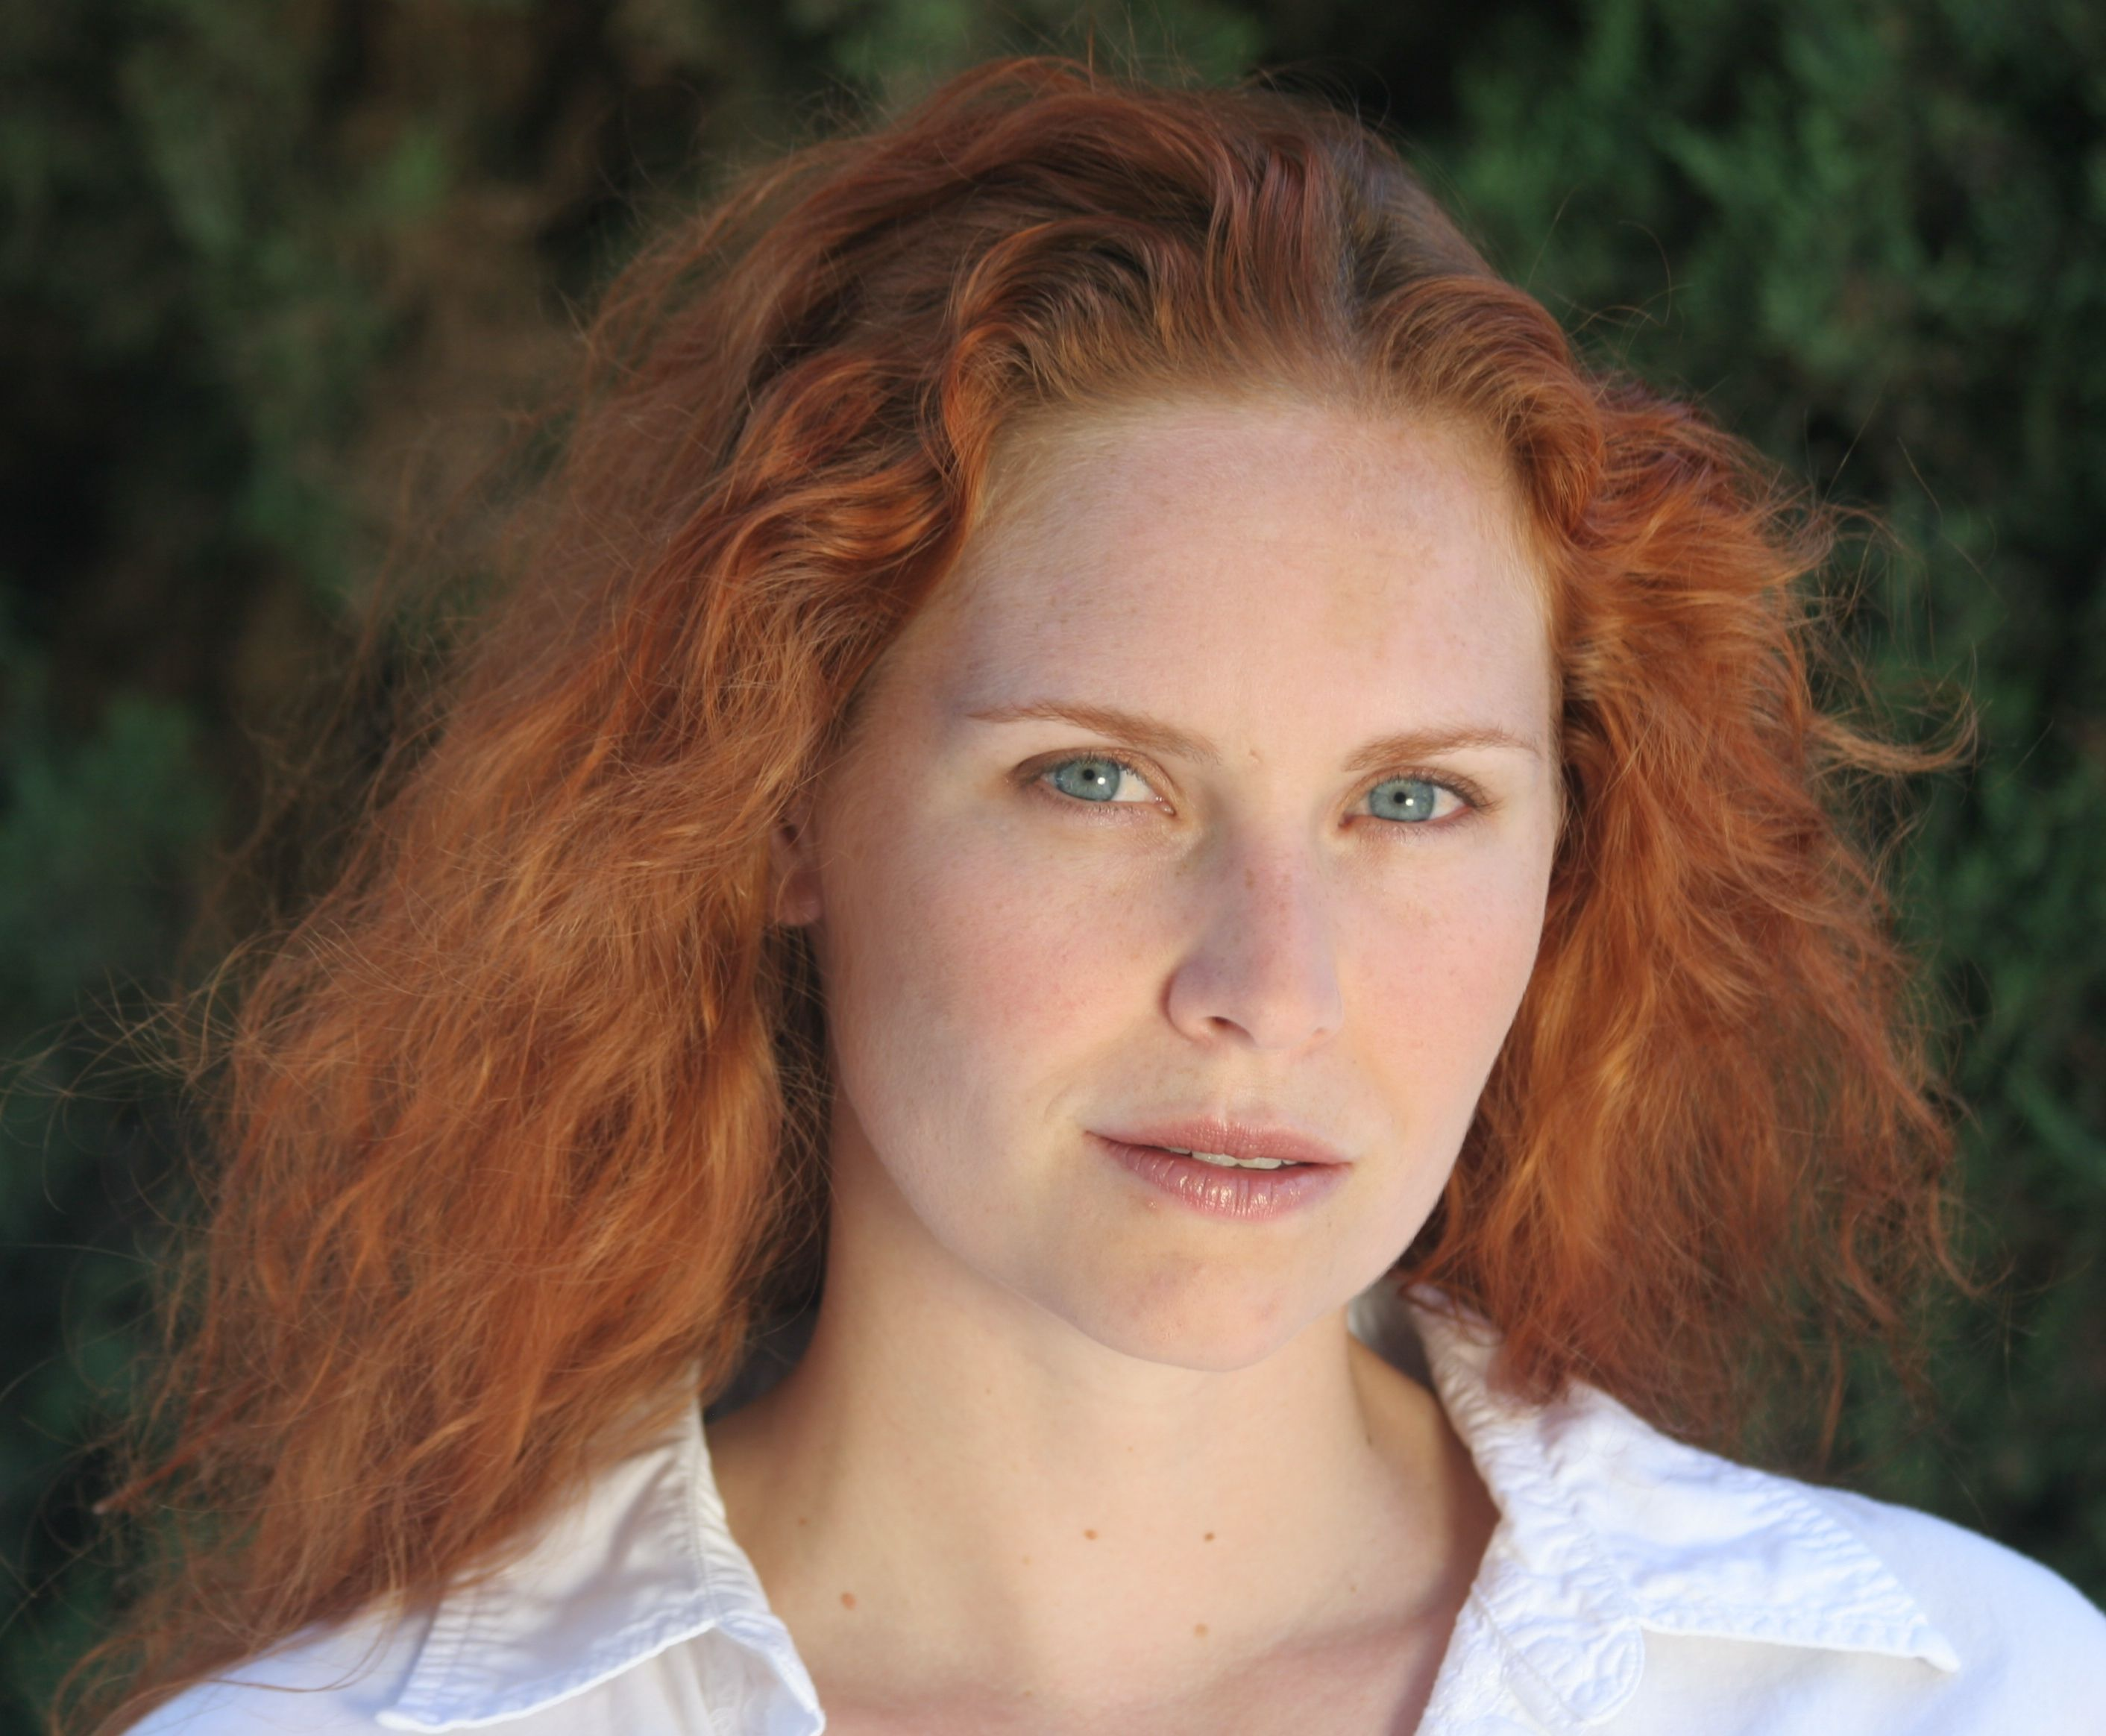 Woman redhead natural portrait 1.jpg